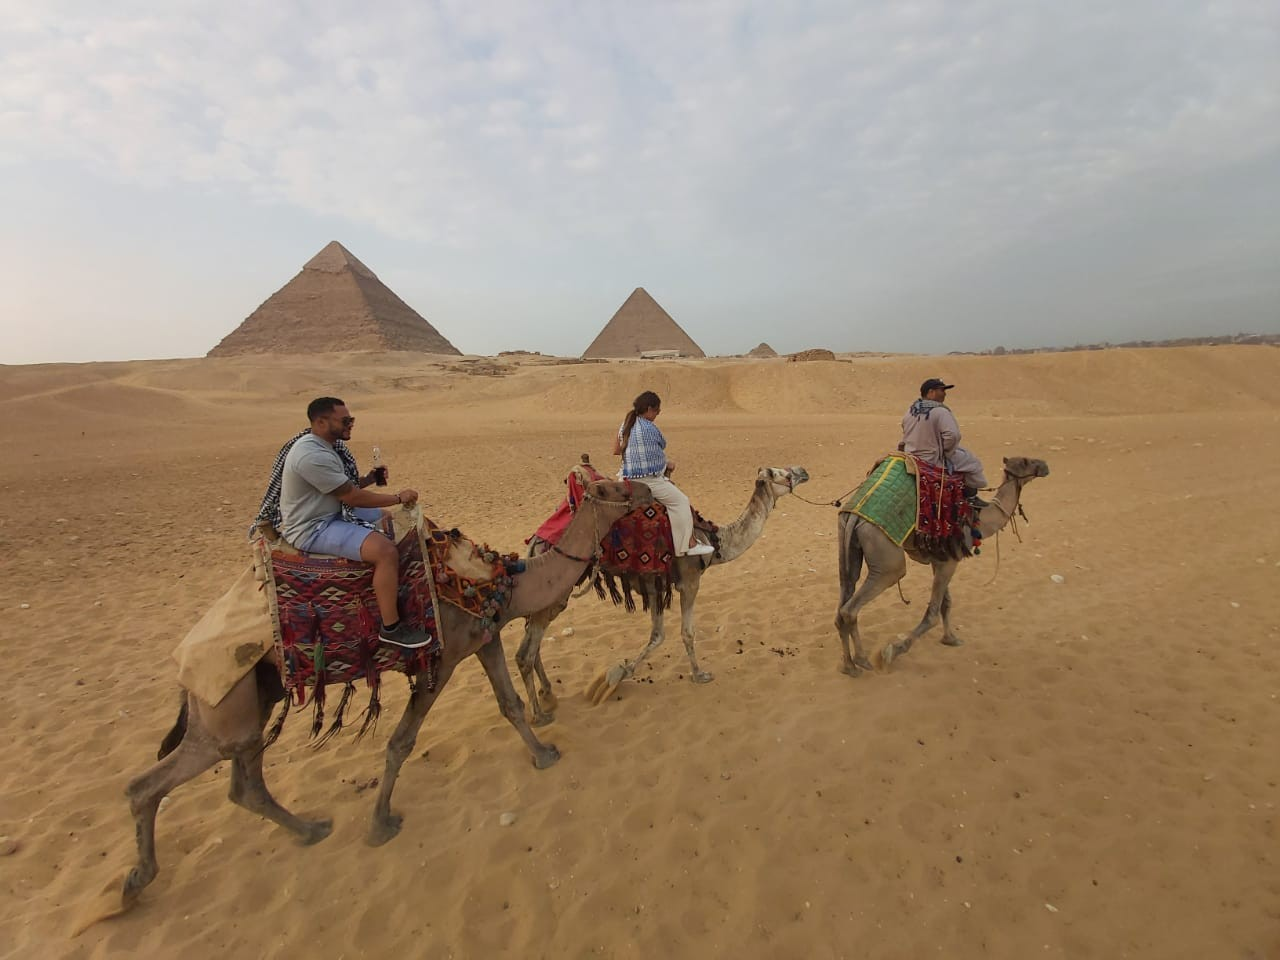 CAMEL RIDE PRIVATE AT THE PYRAMIDS SUNRISE | SUNSET